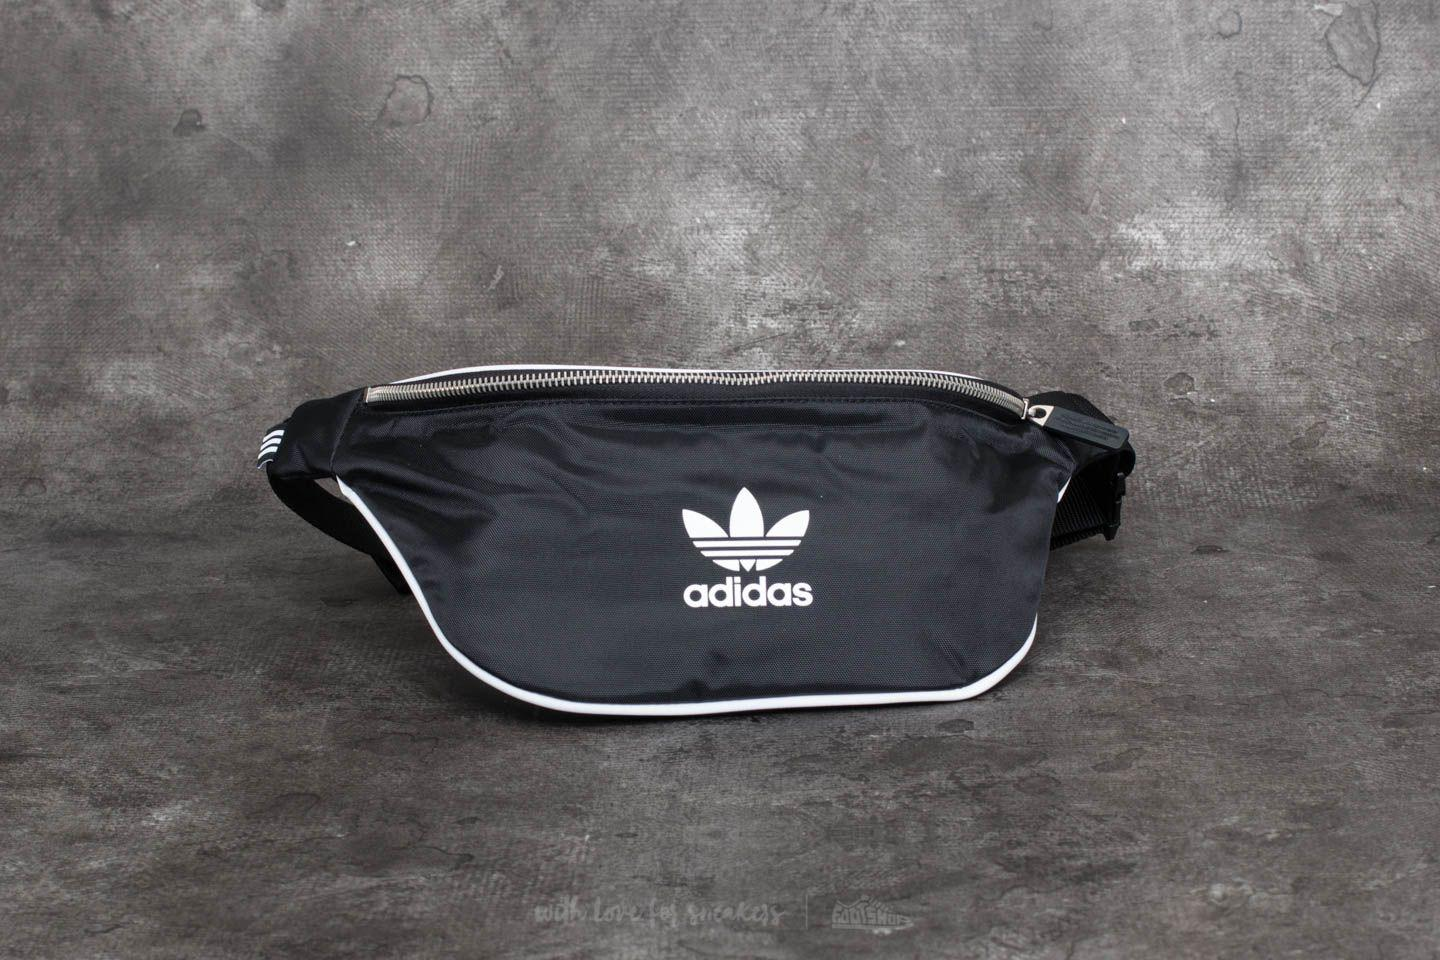 Lyst - adidas Originals Adidas Waist Bag Black in Black for Men 000036e90fb77